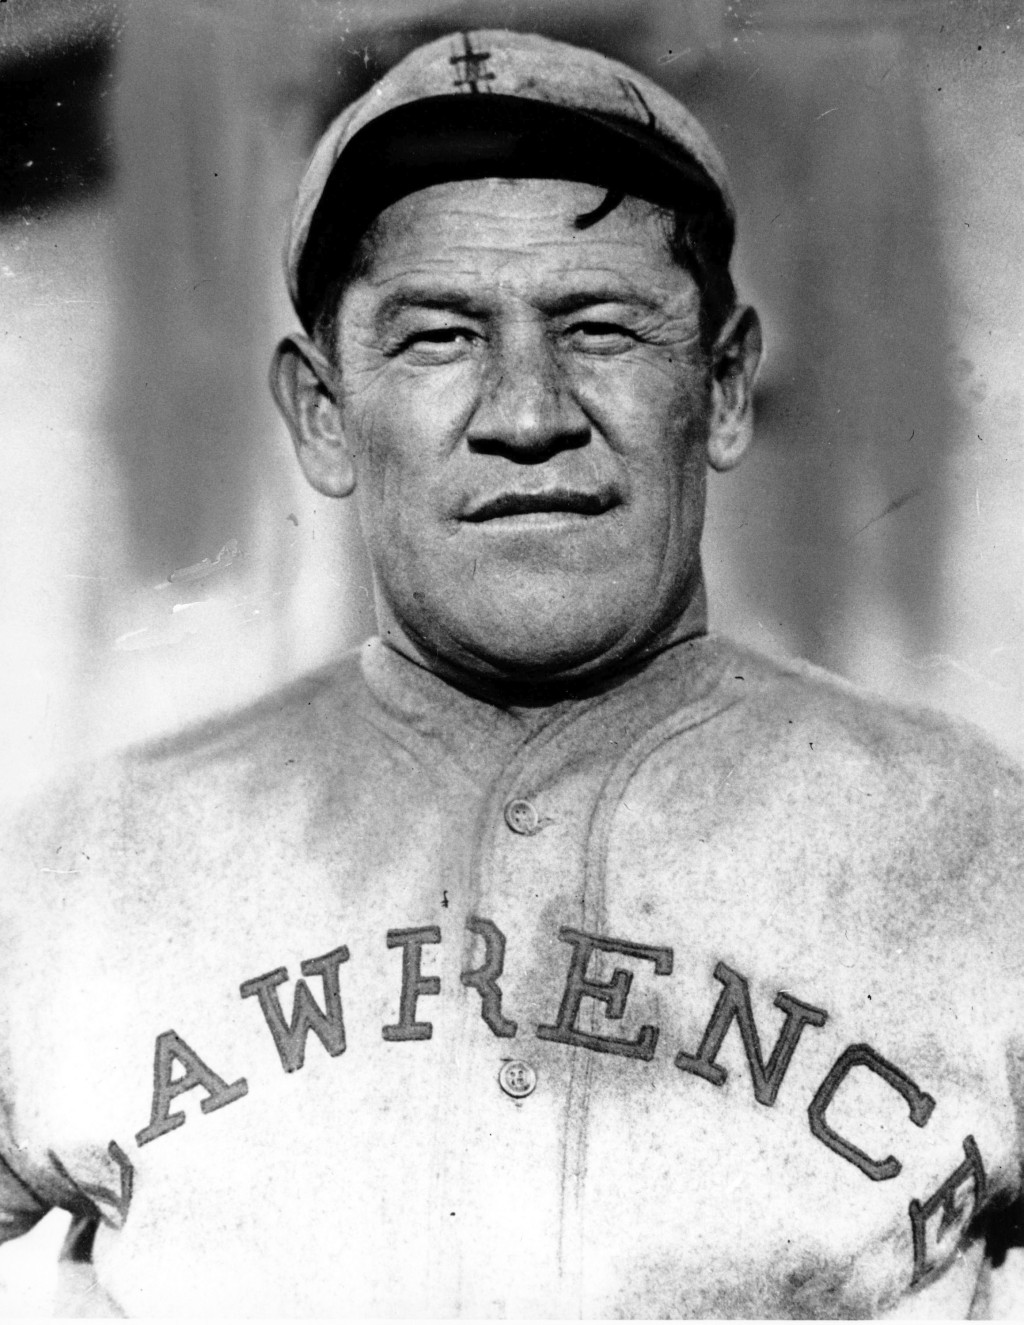 FILE - In this is undated file photo,  Jim Thorpe poses in a baseball uniform. Thorpe was on top of the world after winning gold medals in the decathl...